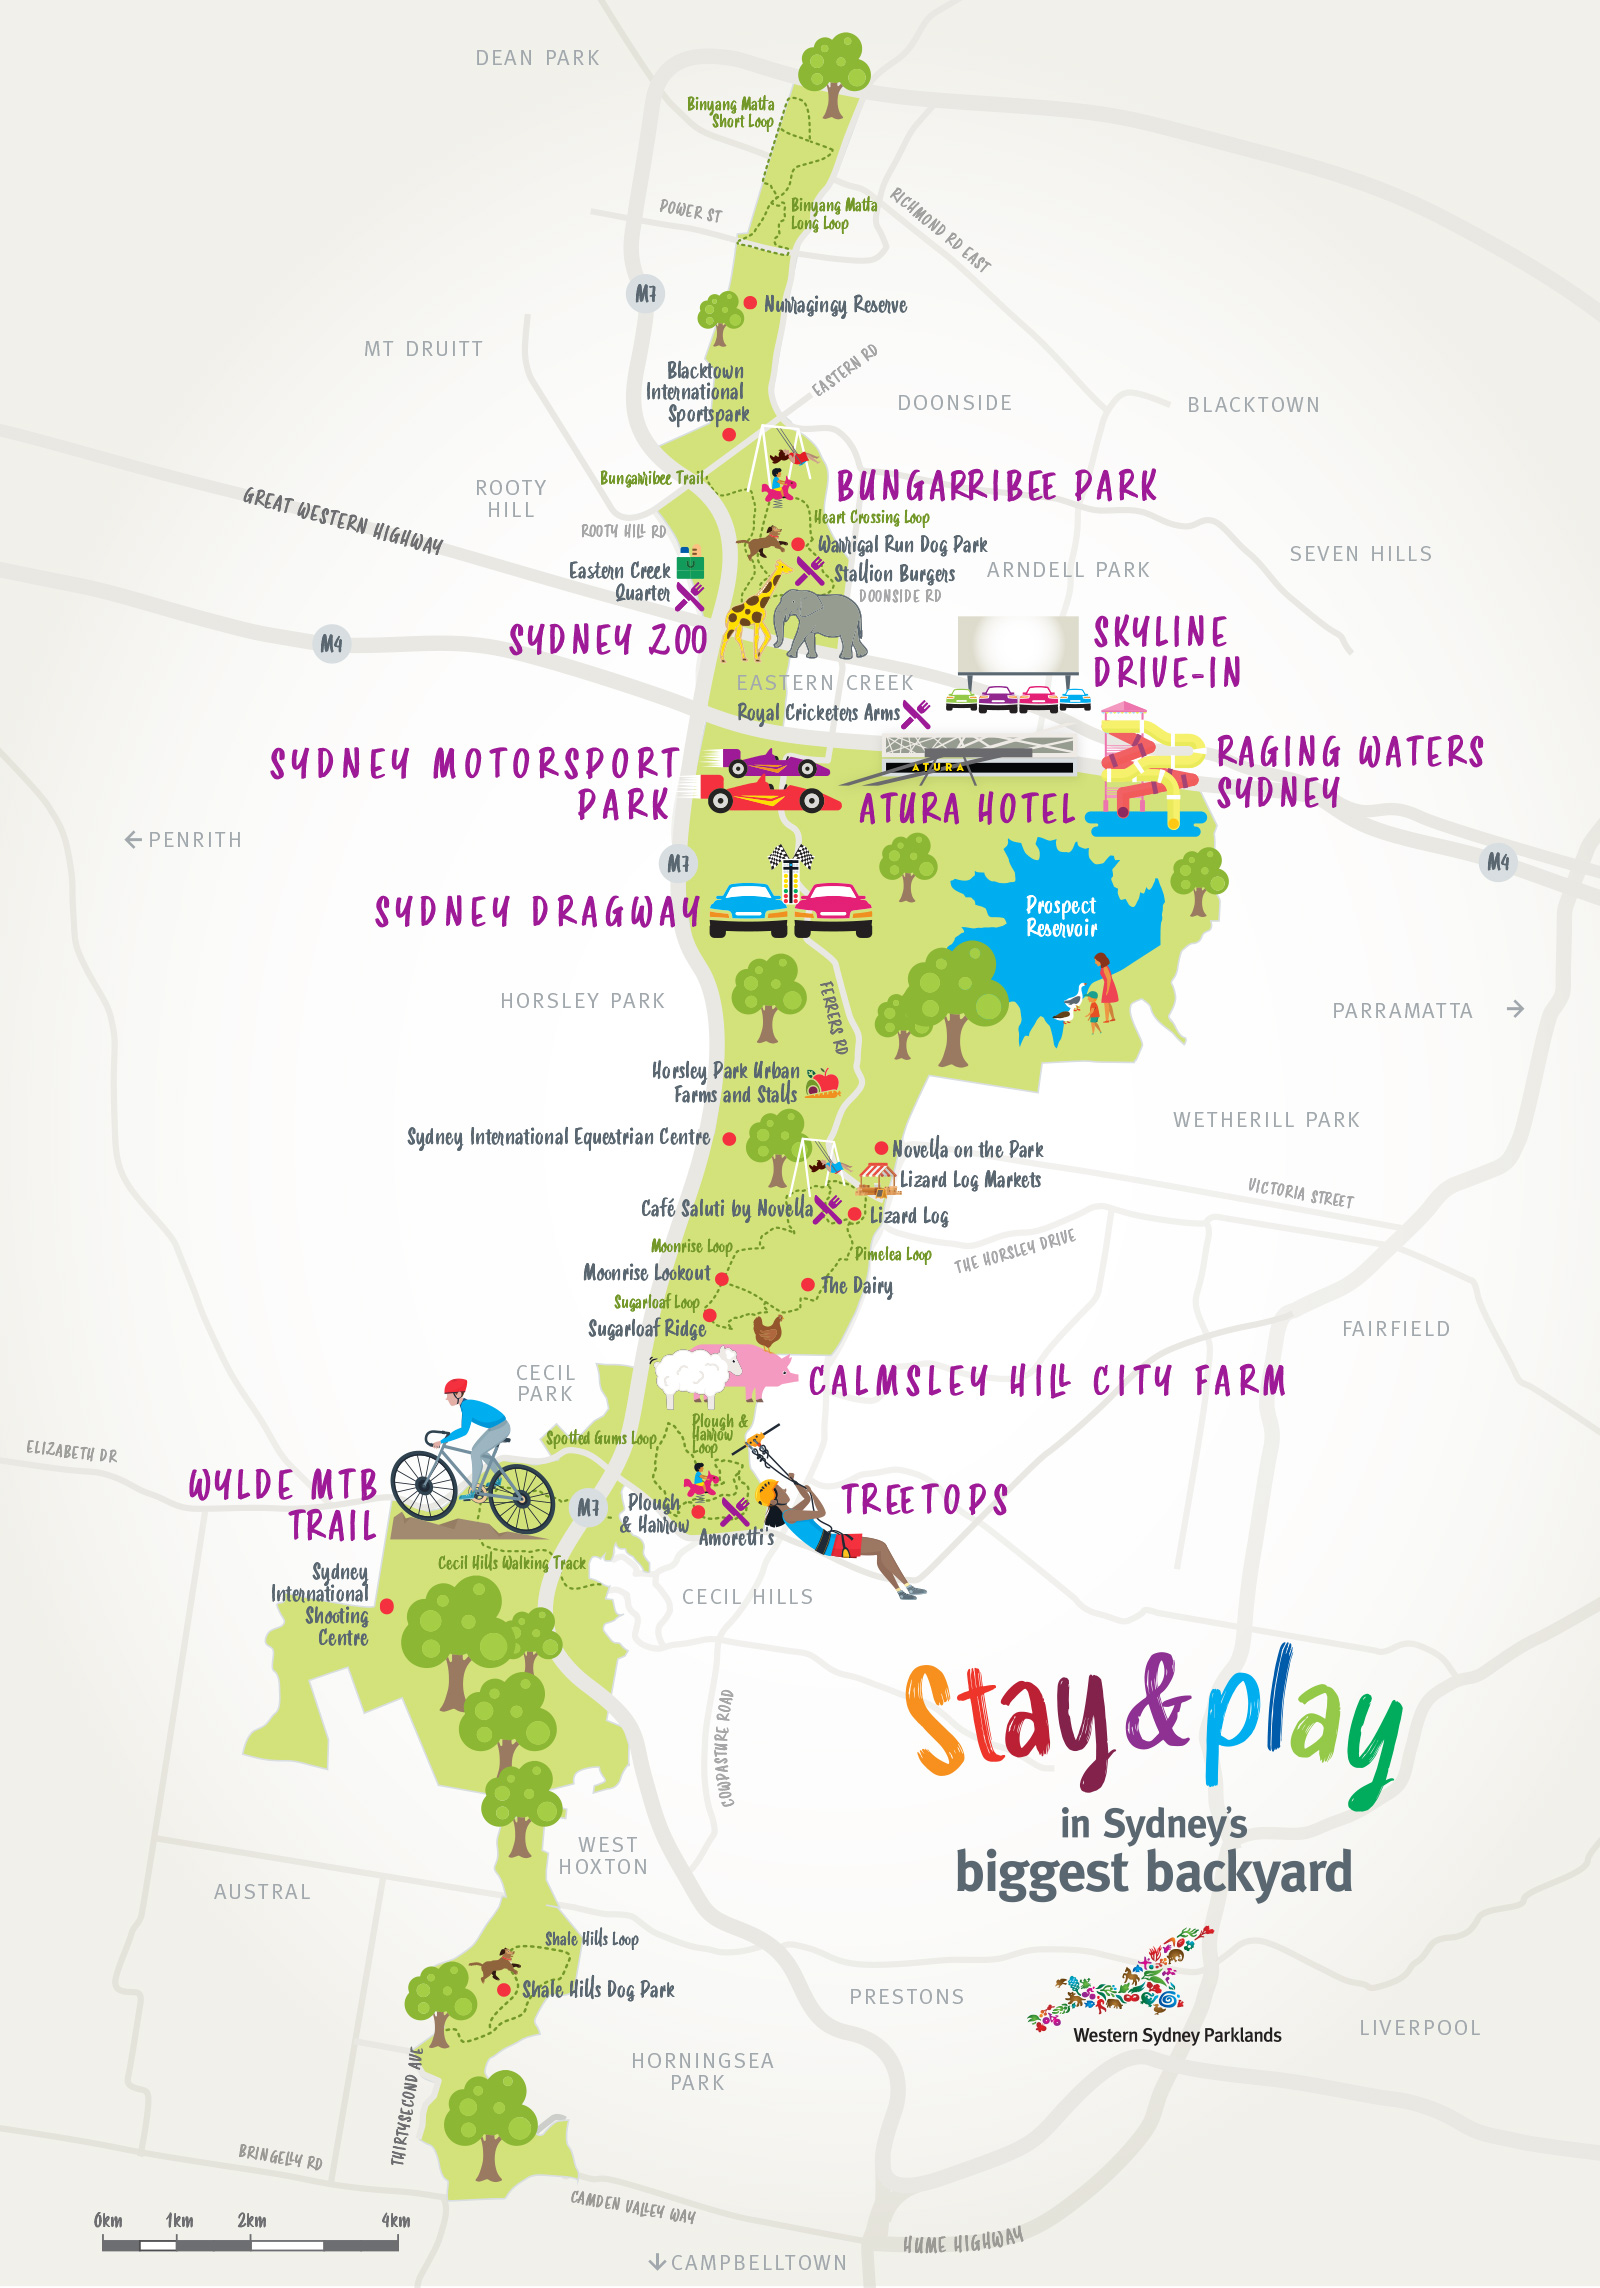 Sydney Biggest Backyard attractions and tourist map - stay and play campaign